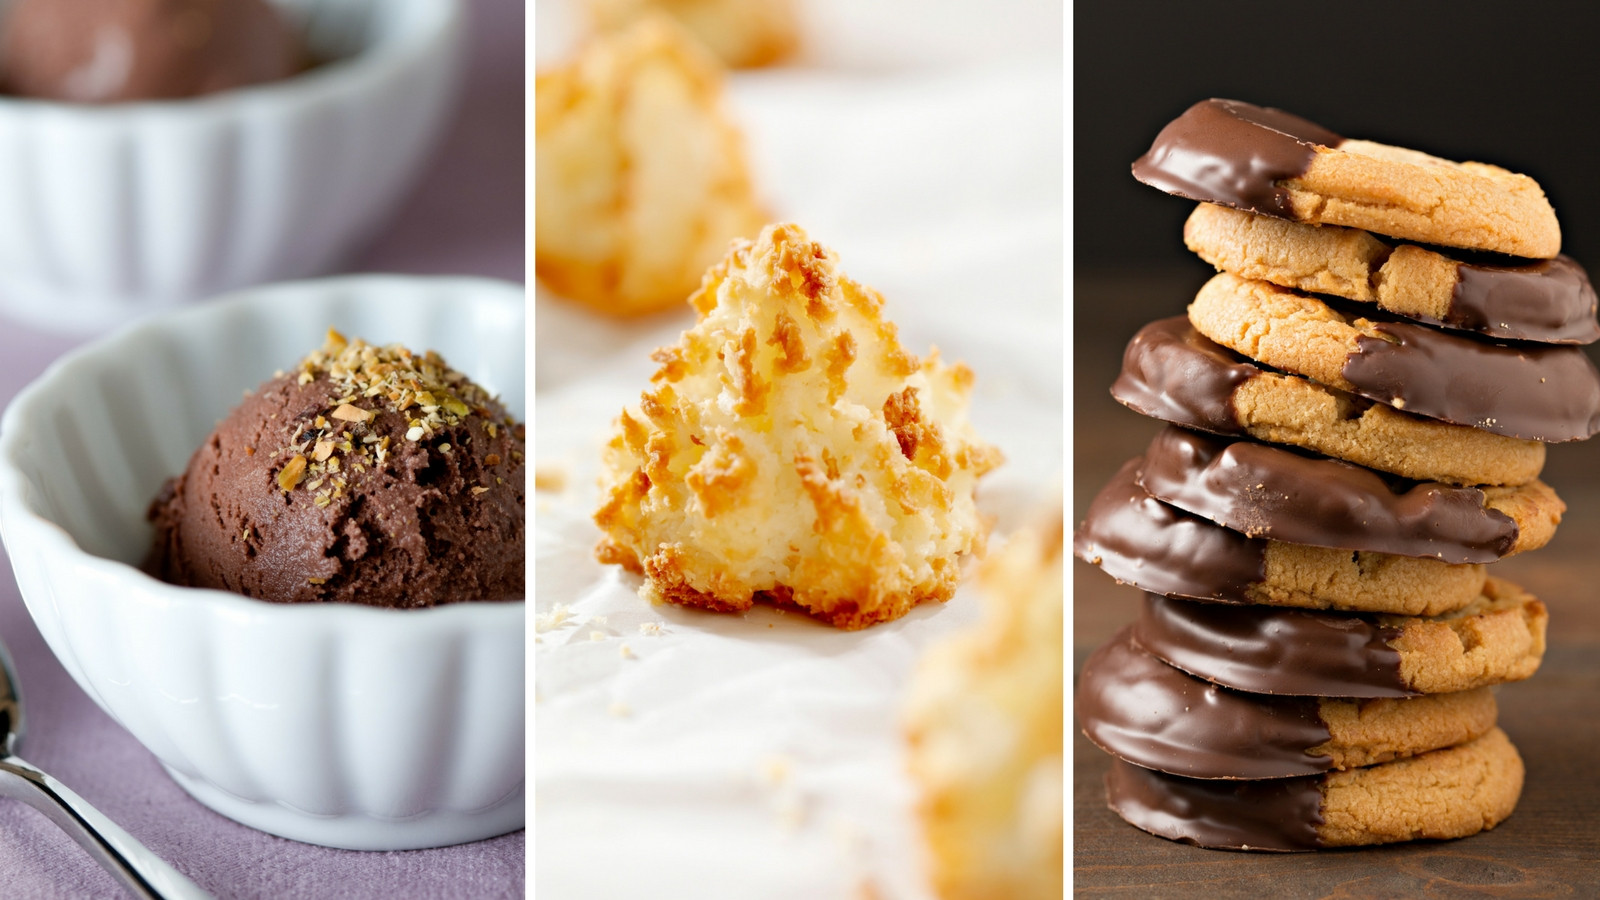 Jewish Desserts For Passover  9 Passover Desserts That Don t Suck